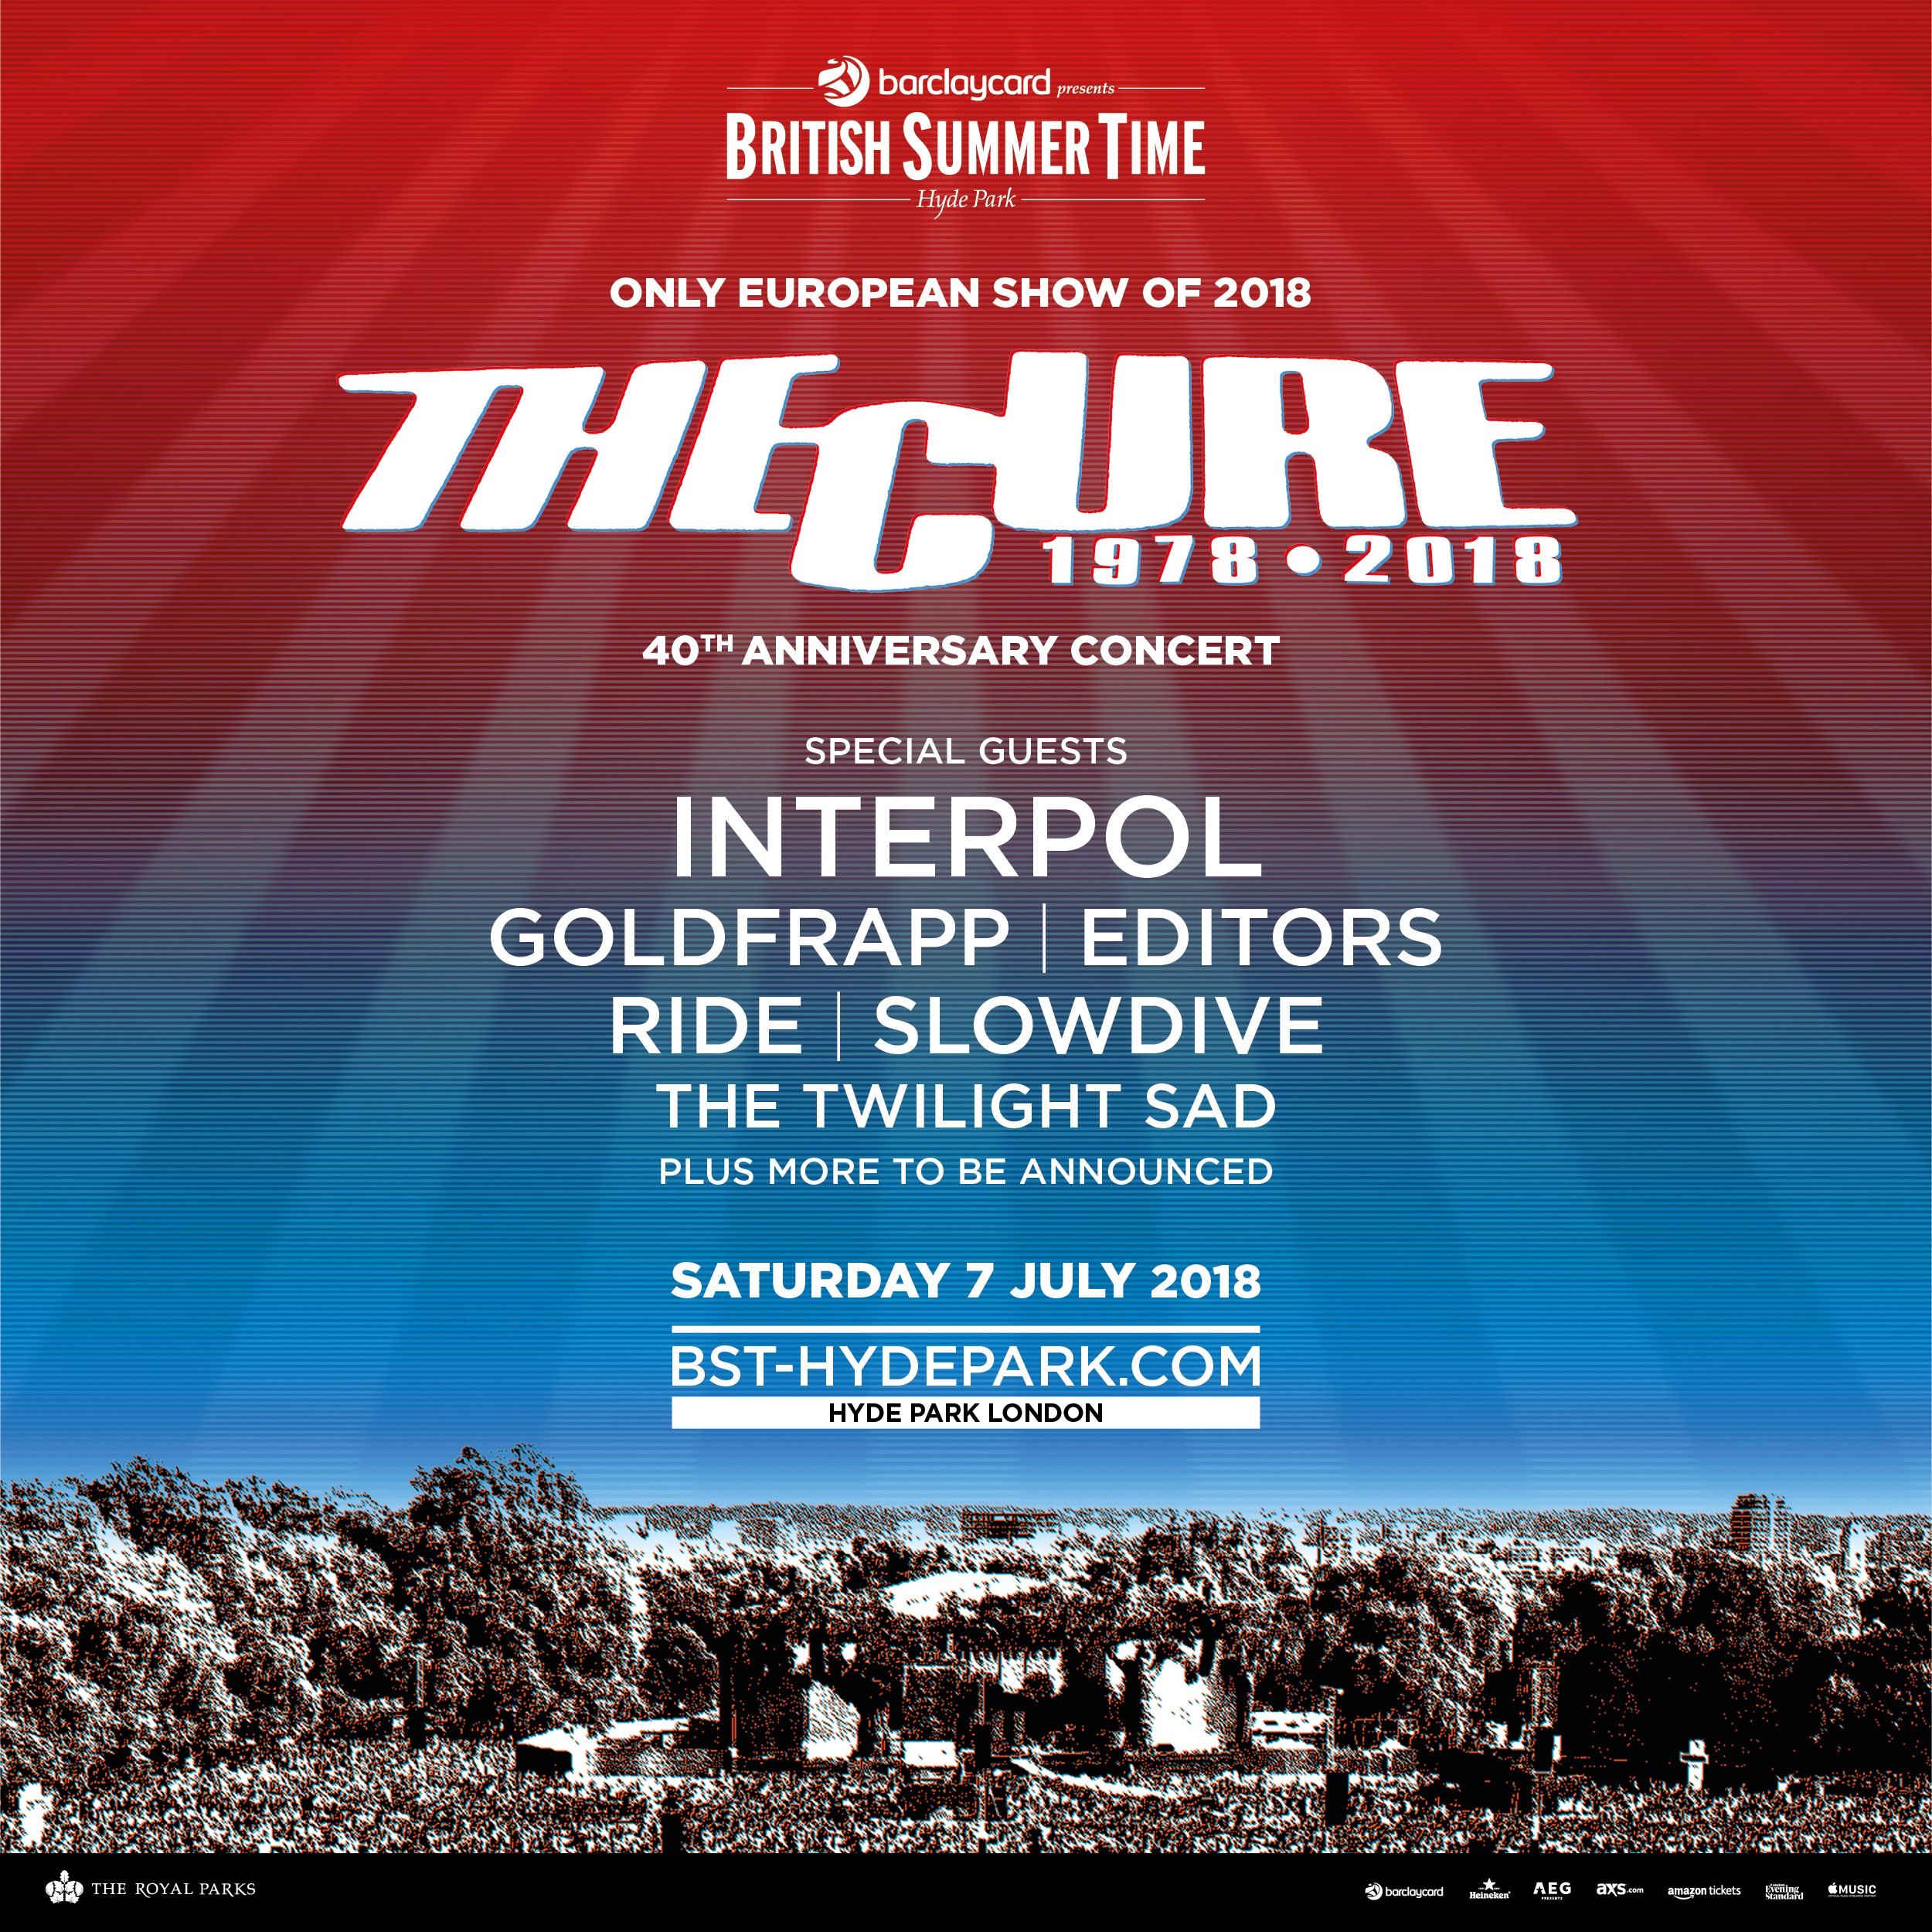 The Cure BST British Summer Time 2018 line-up post